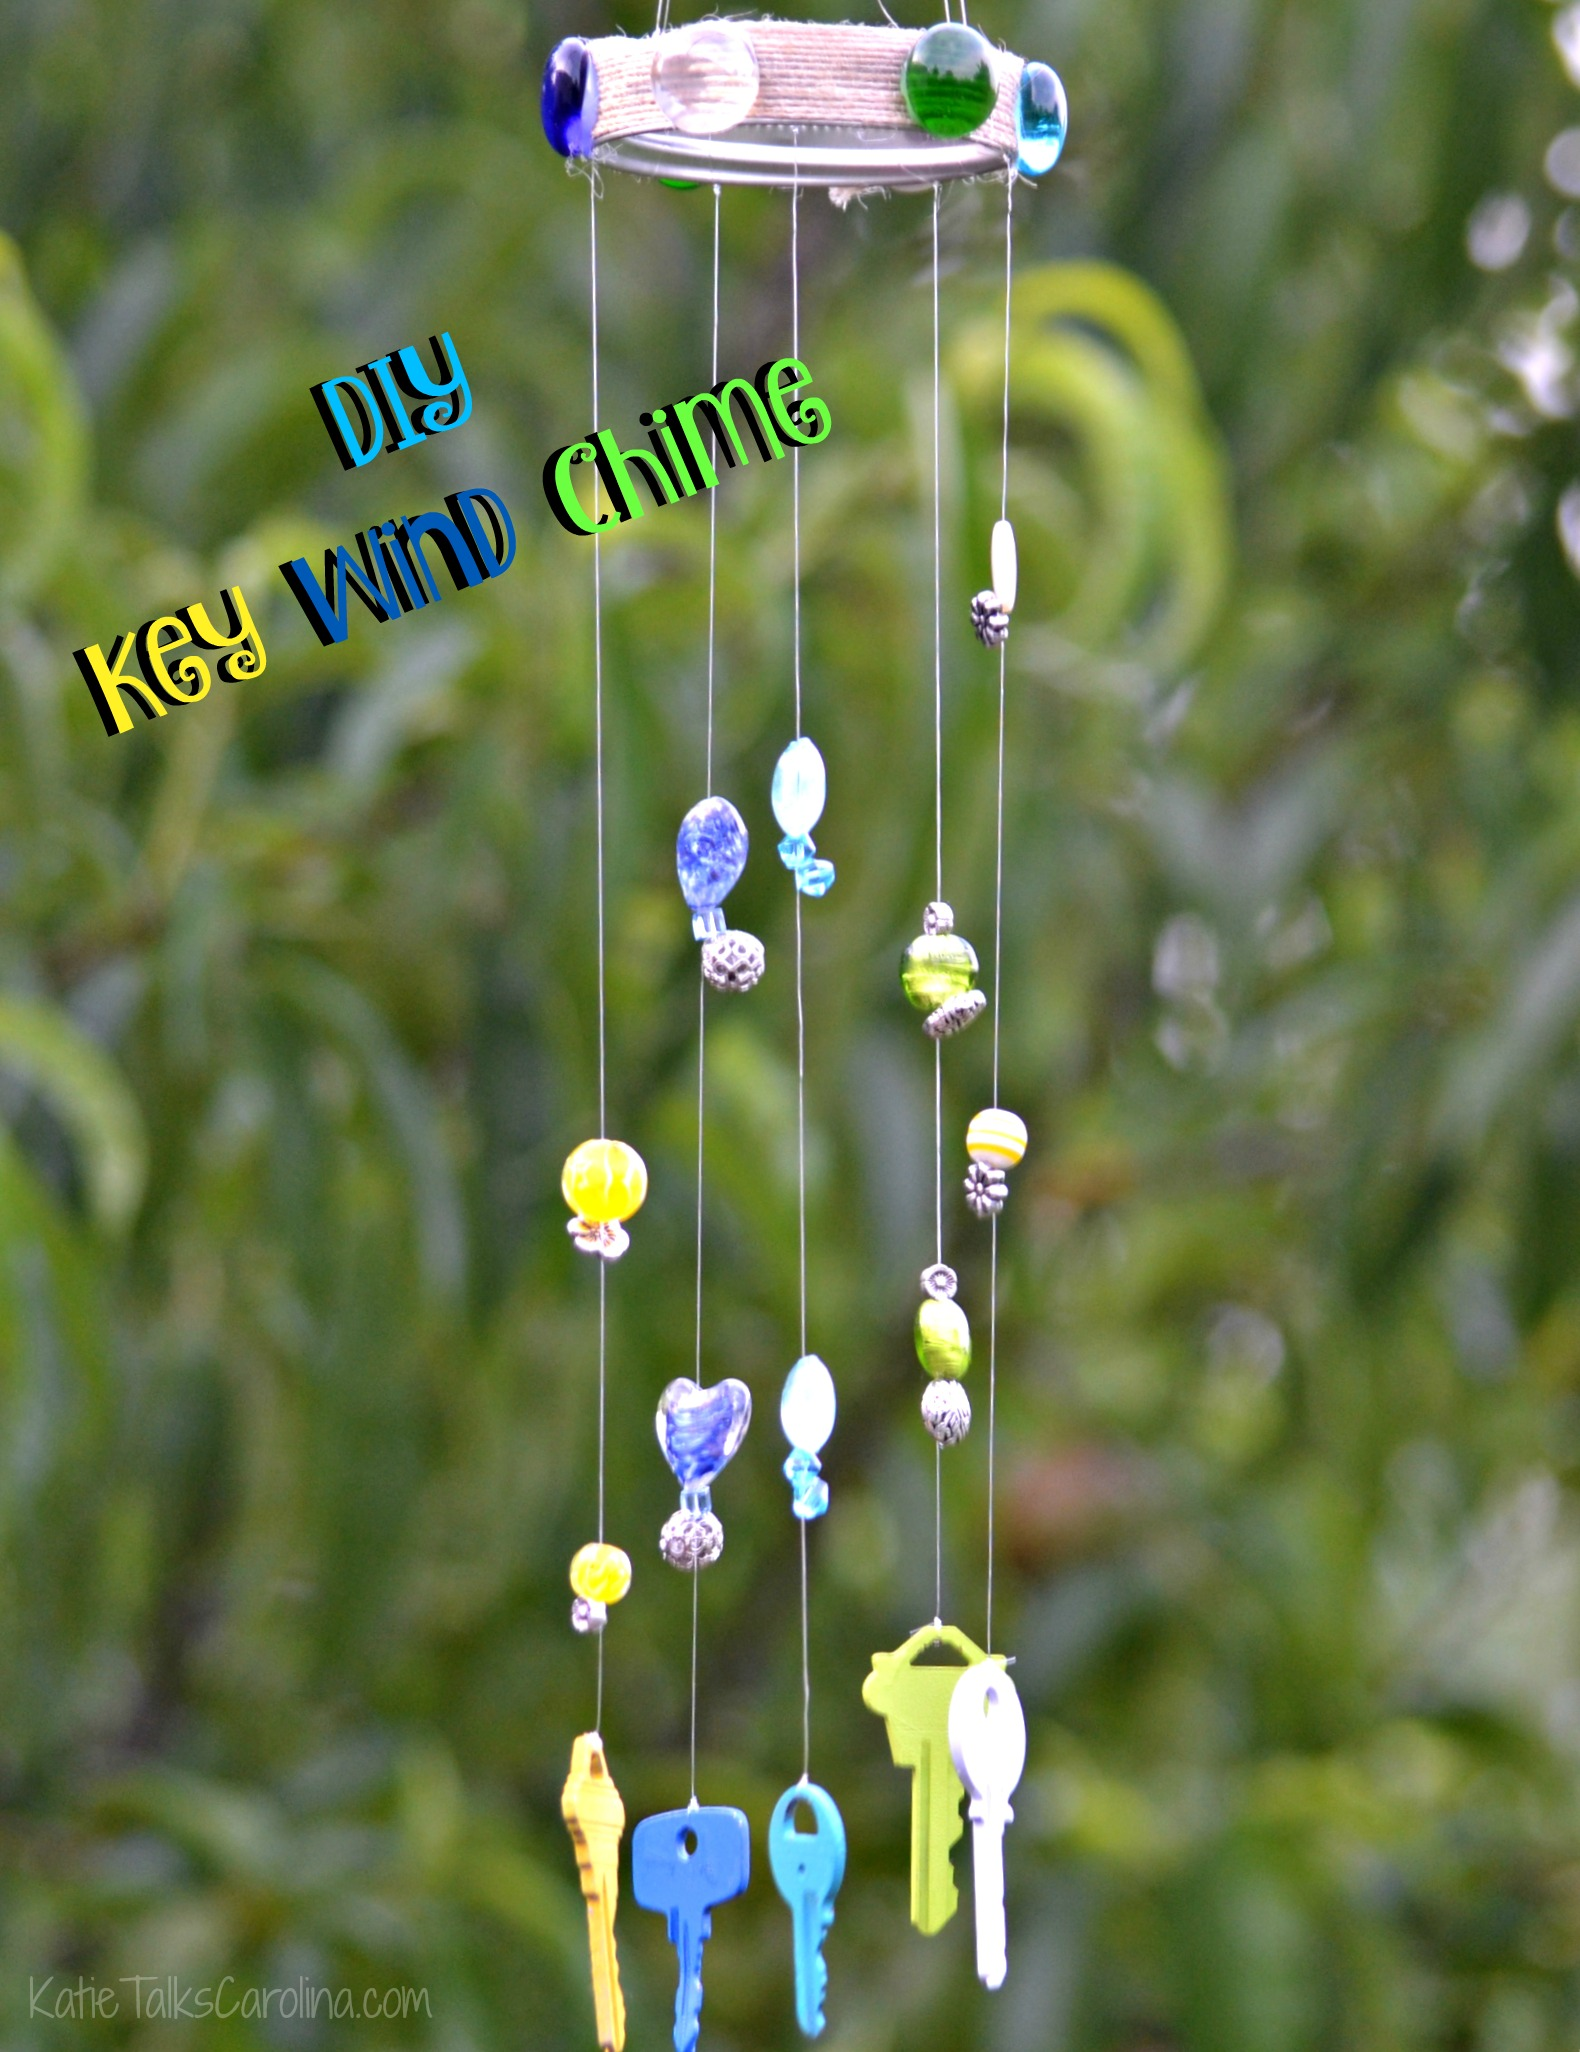 Diy Wind Chimes Key Wind Chime Rocketshotz